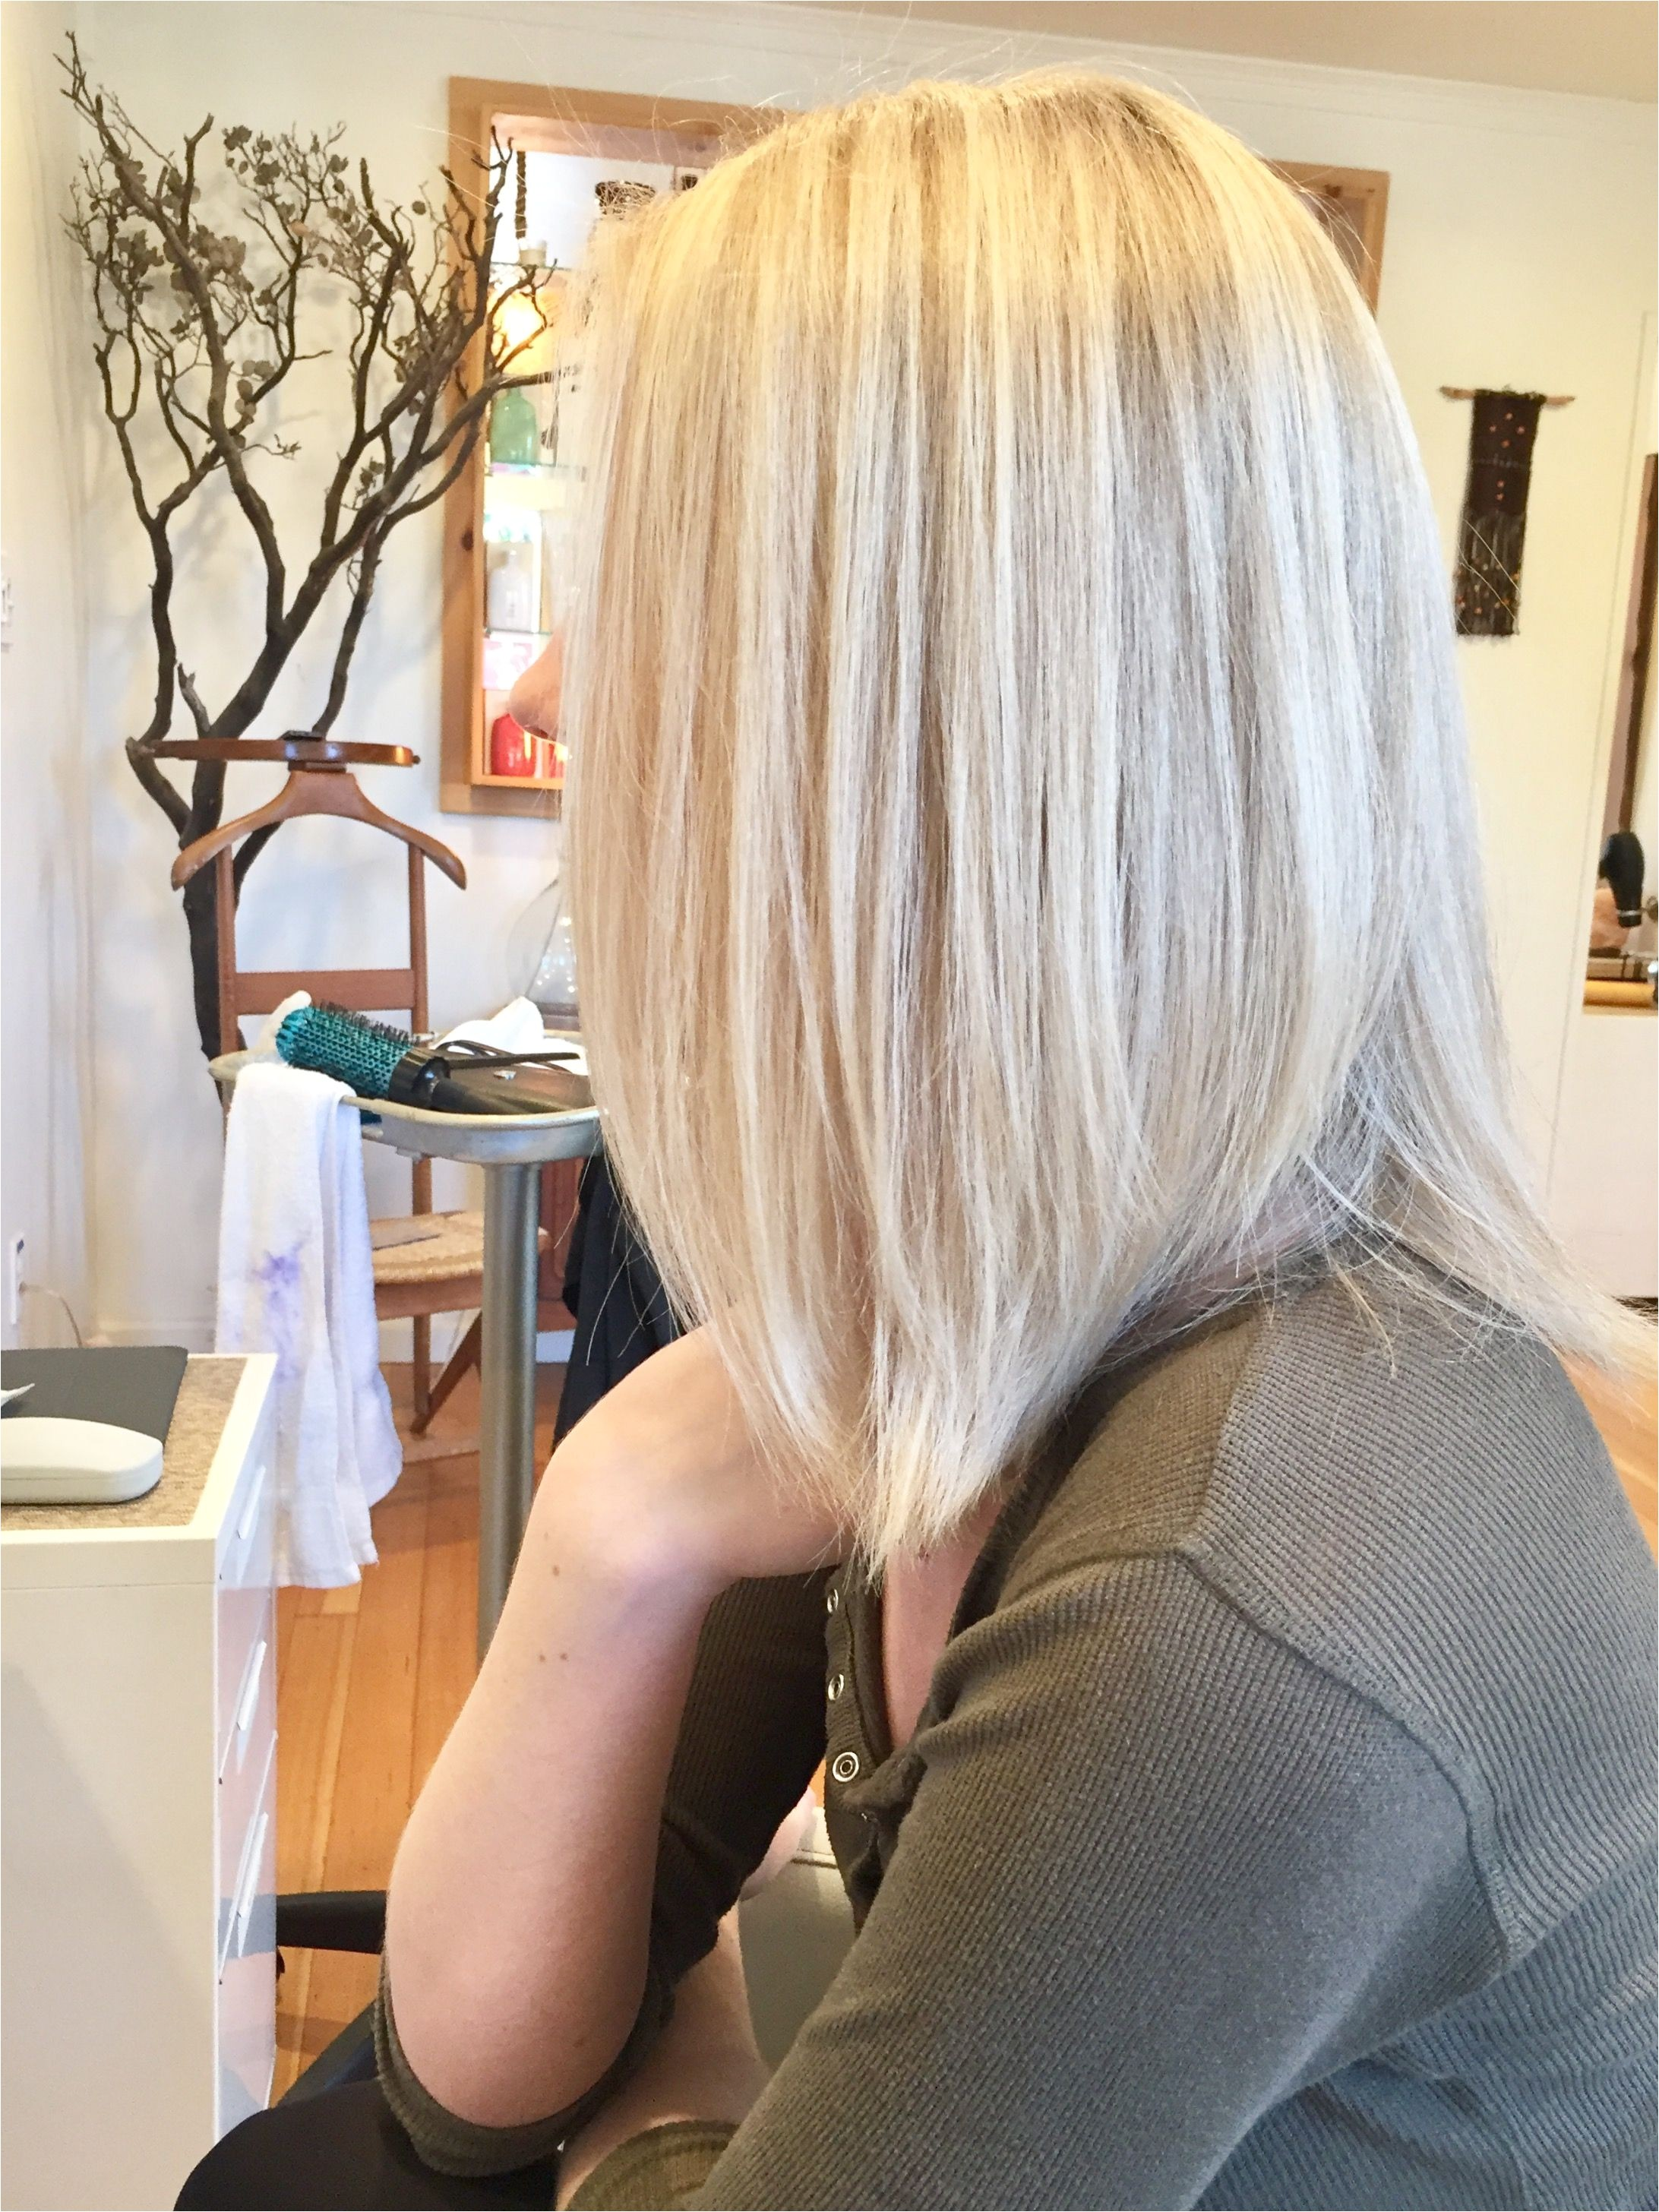 Hairstyles for short hair hair fringe bangs braided hair for girls feather cut hairstyle for curly hair feather cut ponytail would i look good with blonde